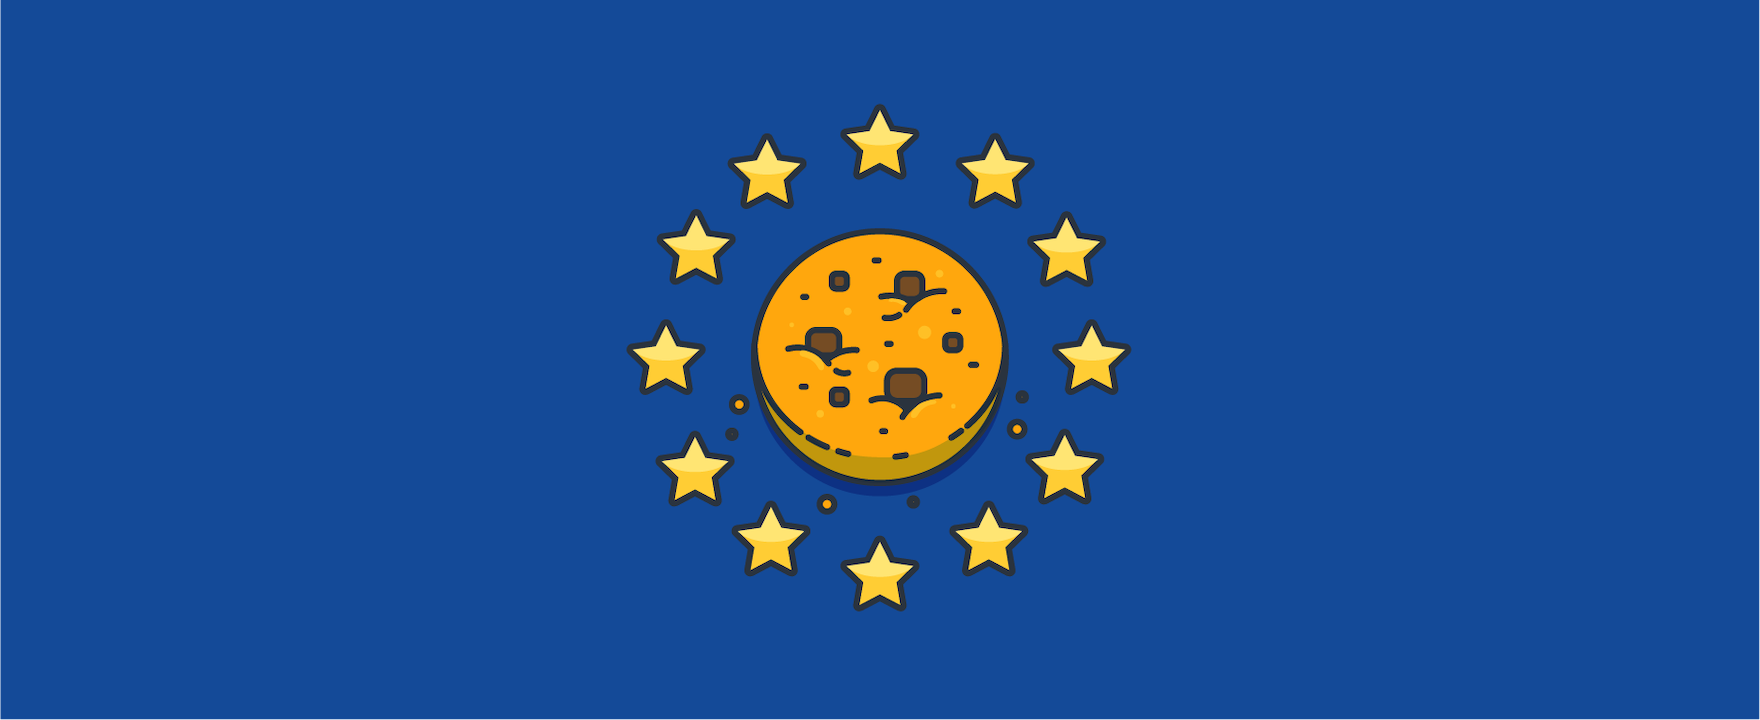 a cookie inside the EU flag – header image for blog post on cookies and live chat